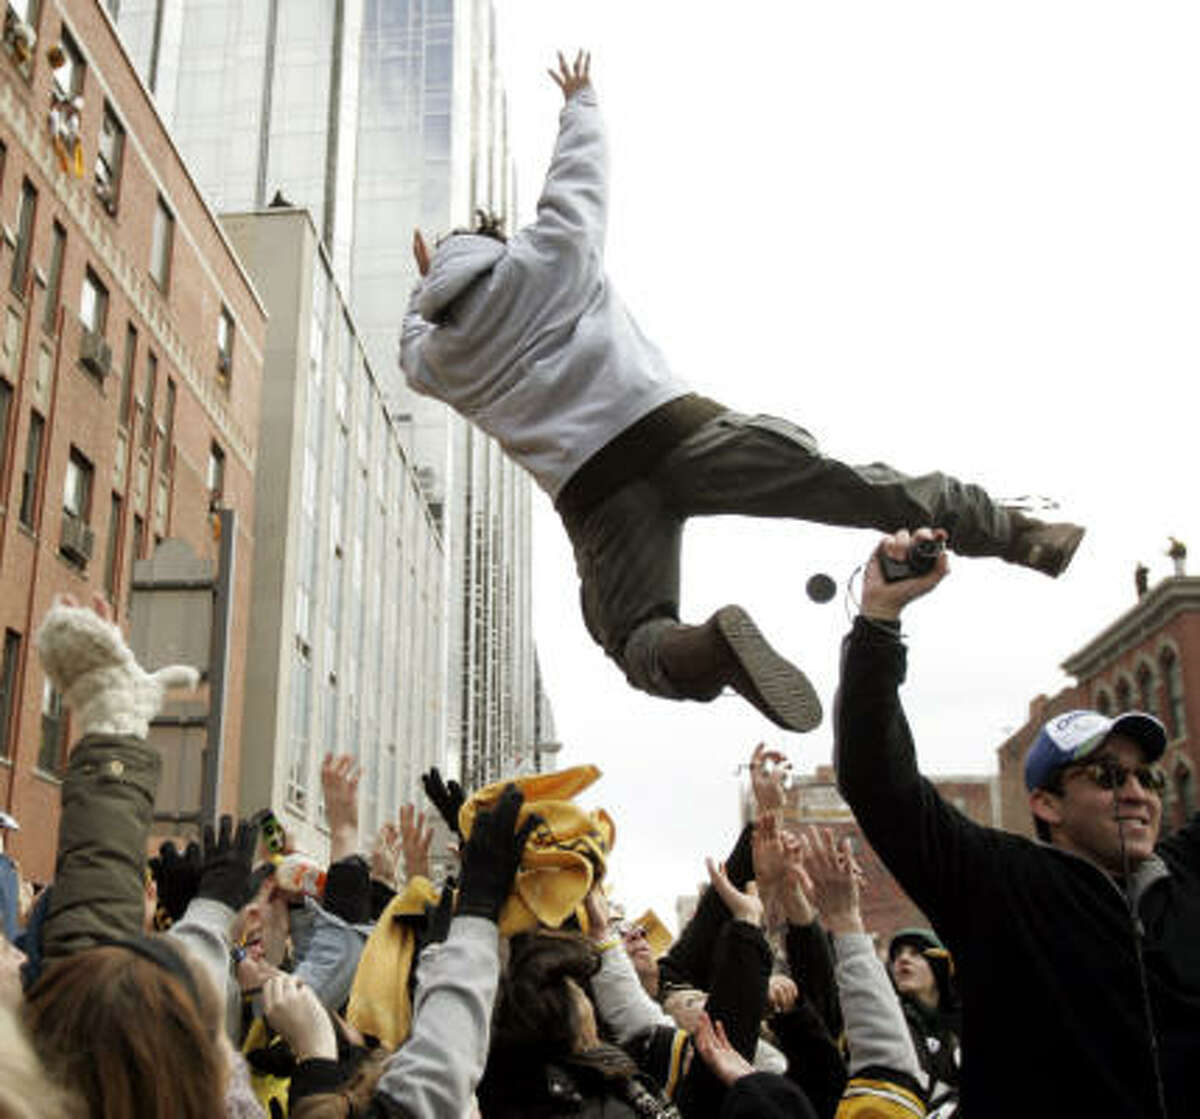 Pittsburgh Steelers safety Troy Polamalu leaps into the crowd during the Super Bowl victory parade.